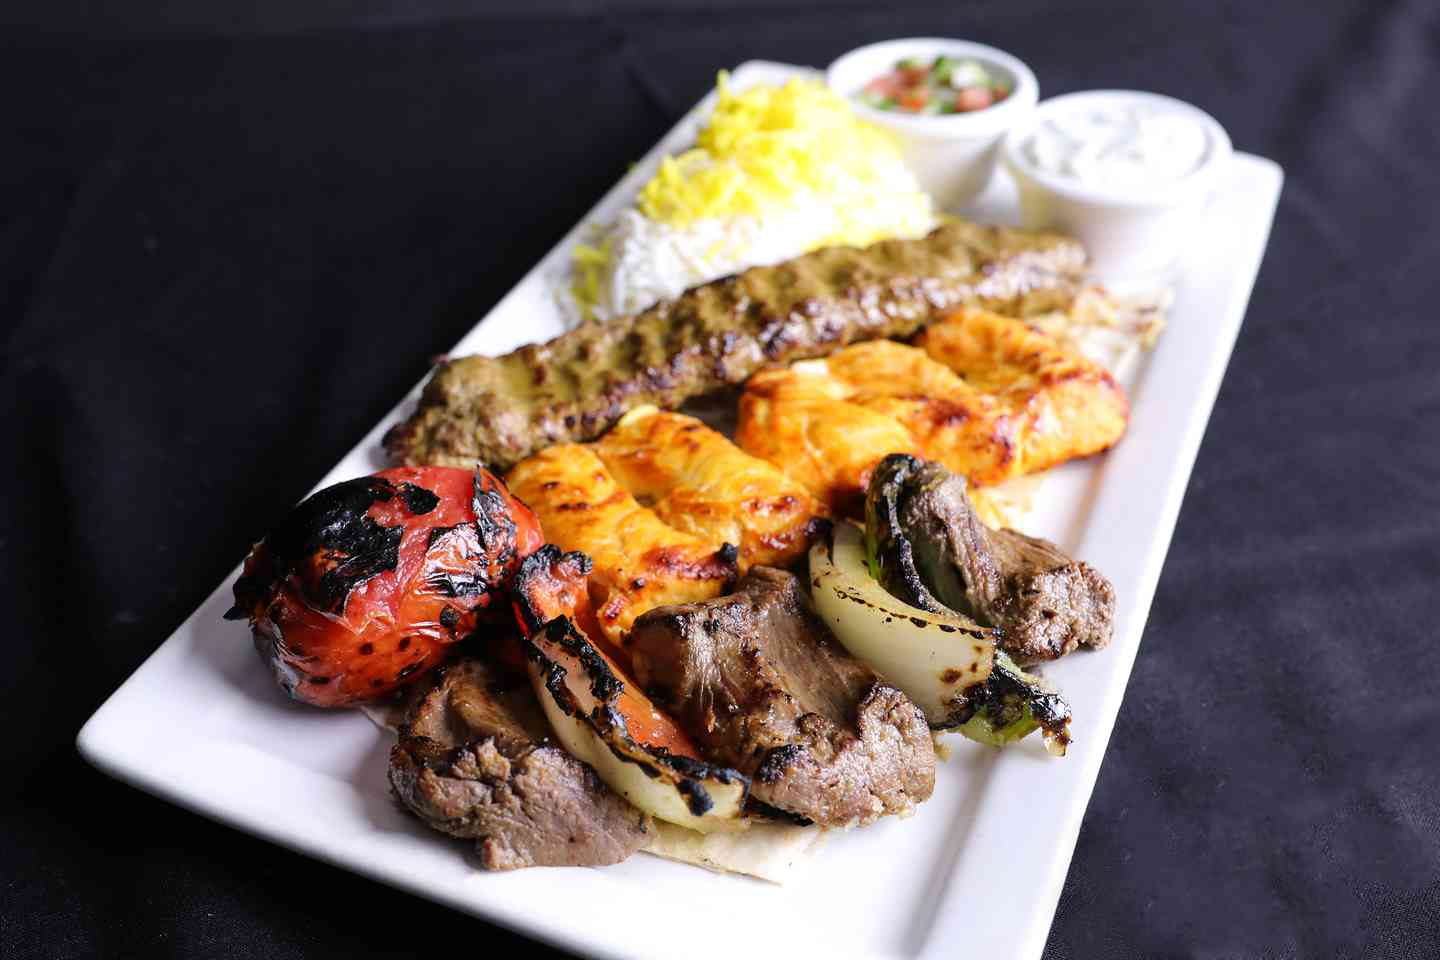 1 Koobideh + 1/2 Filet Shish + 1/2 Chicken Breast